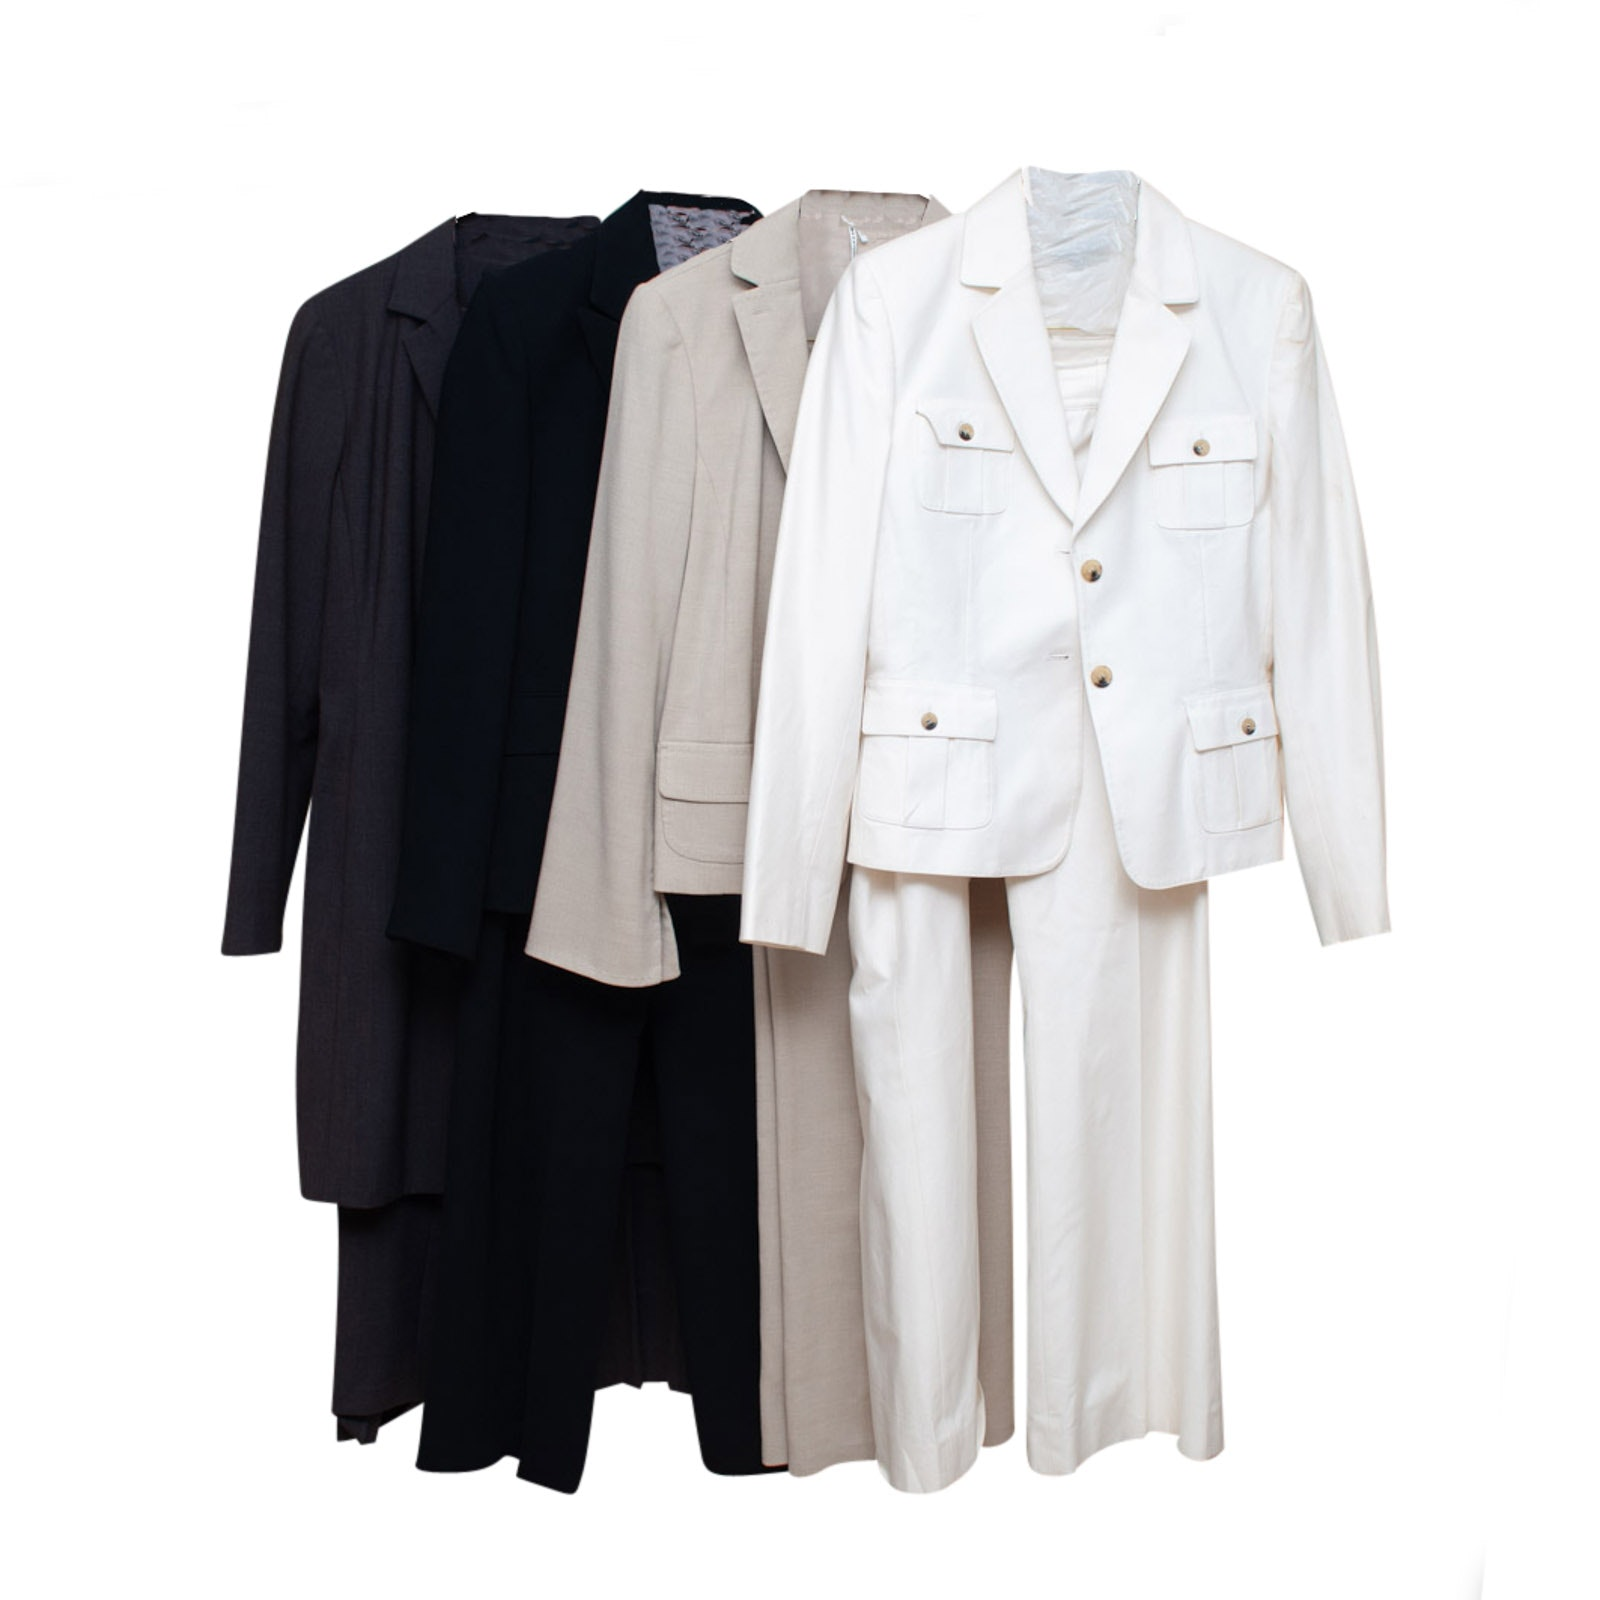 Women's Suits Including Calvin Klein, Tahari, Max Studio, Kenneth Cole New York